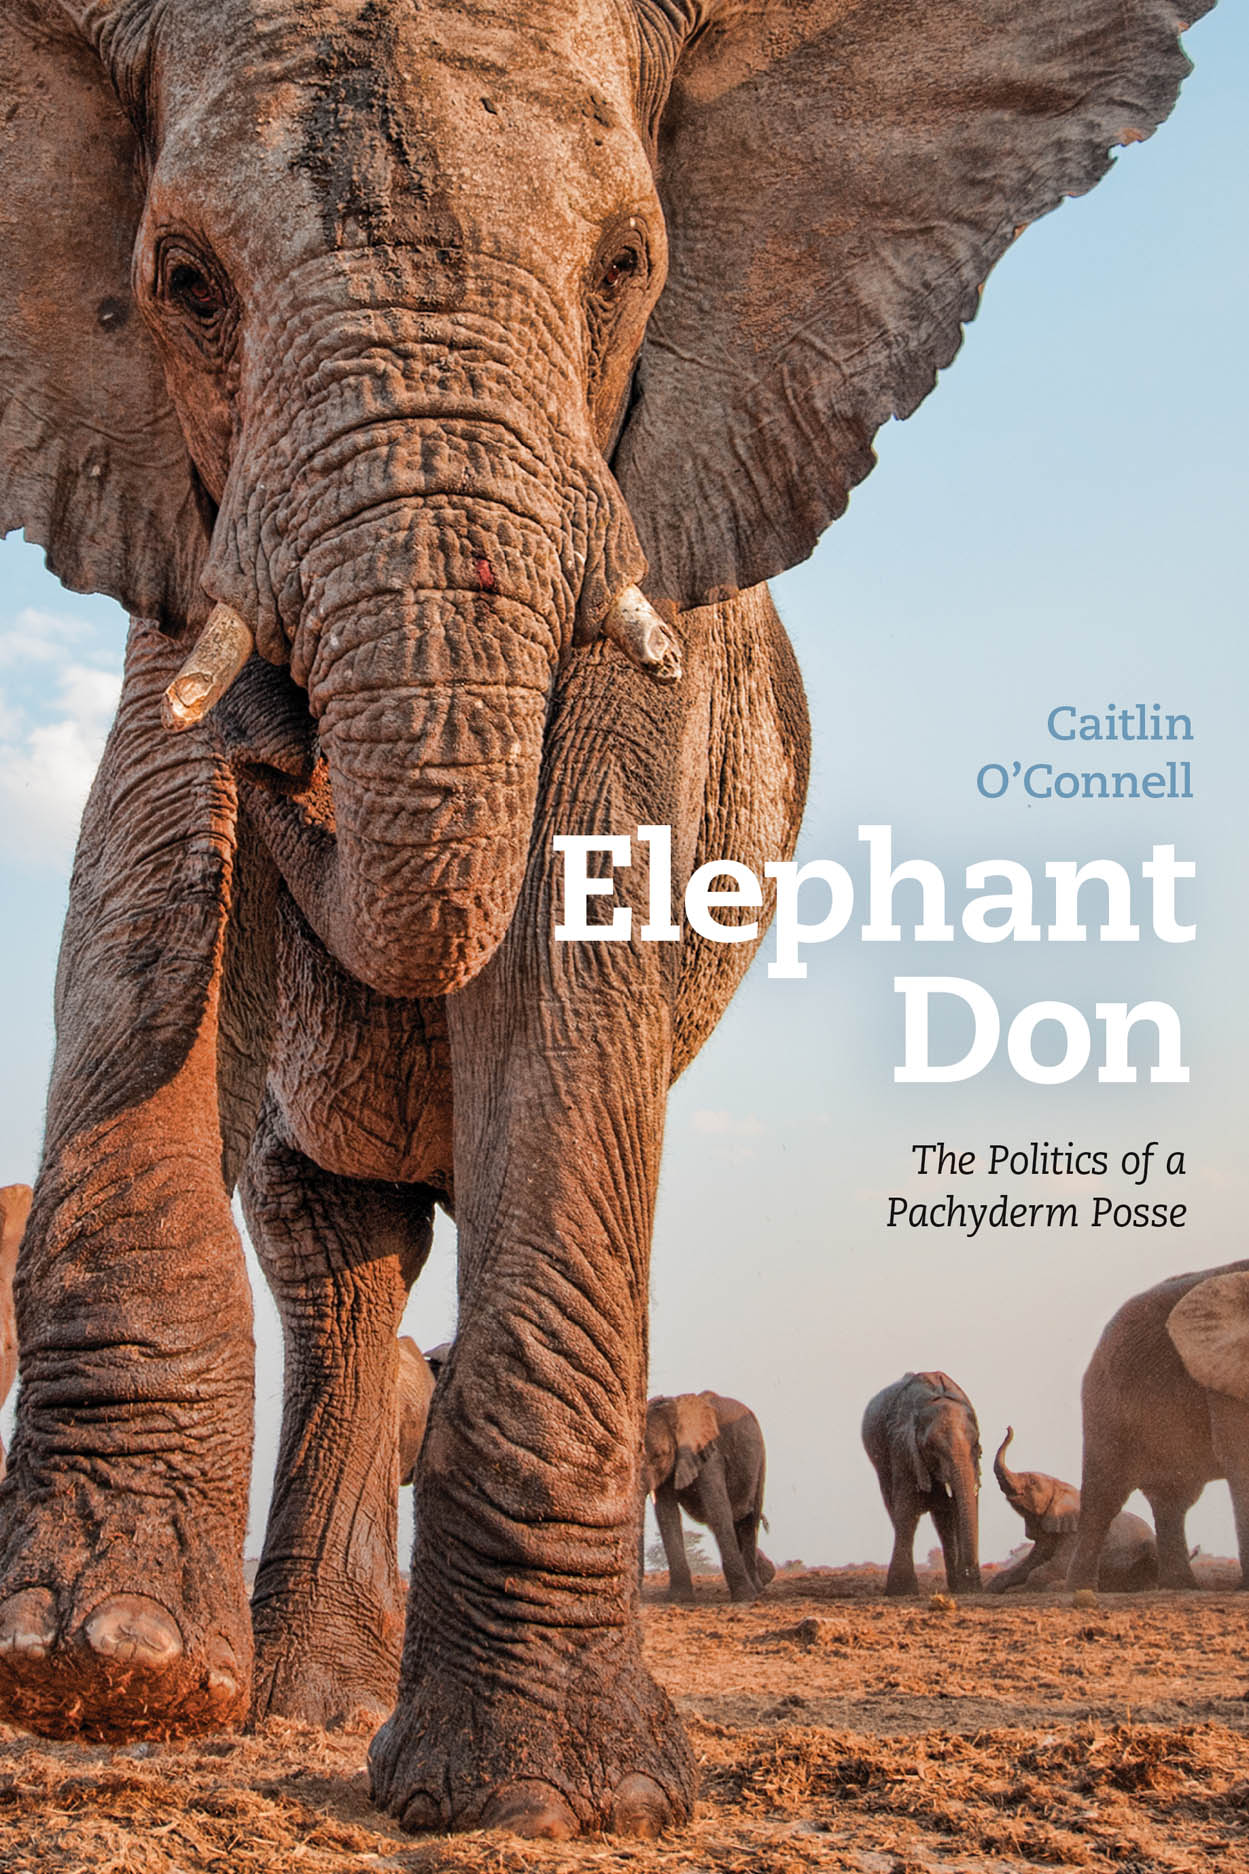 Elephant Don: The Politics of a Pachyderm Posse